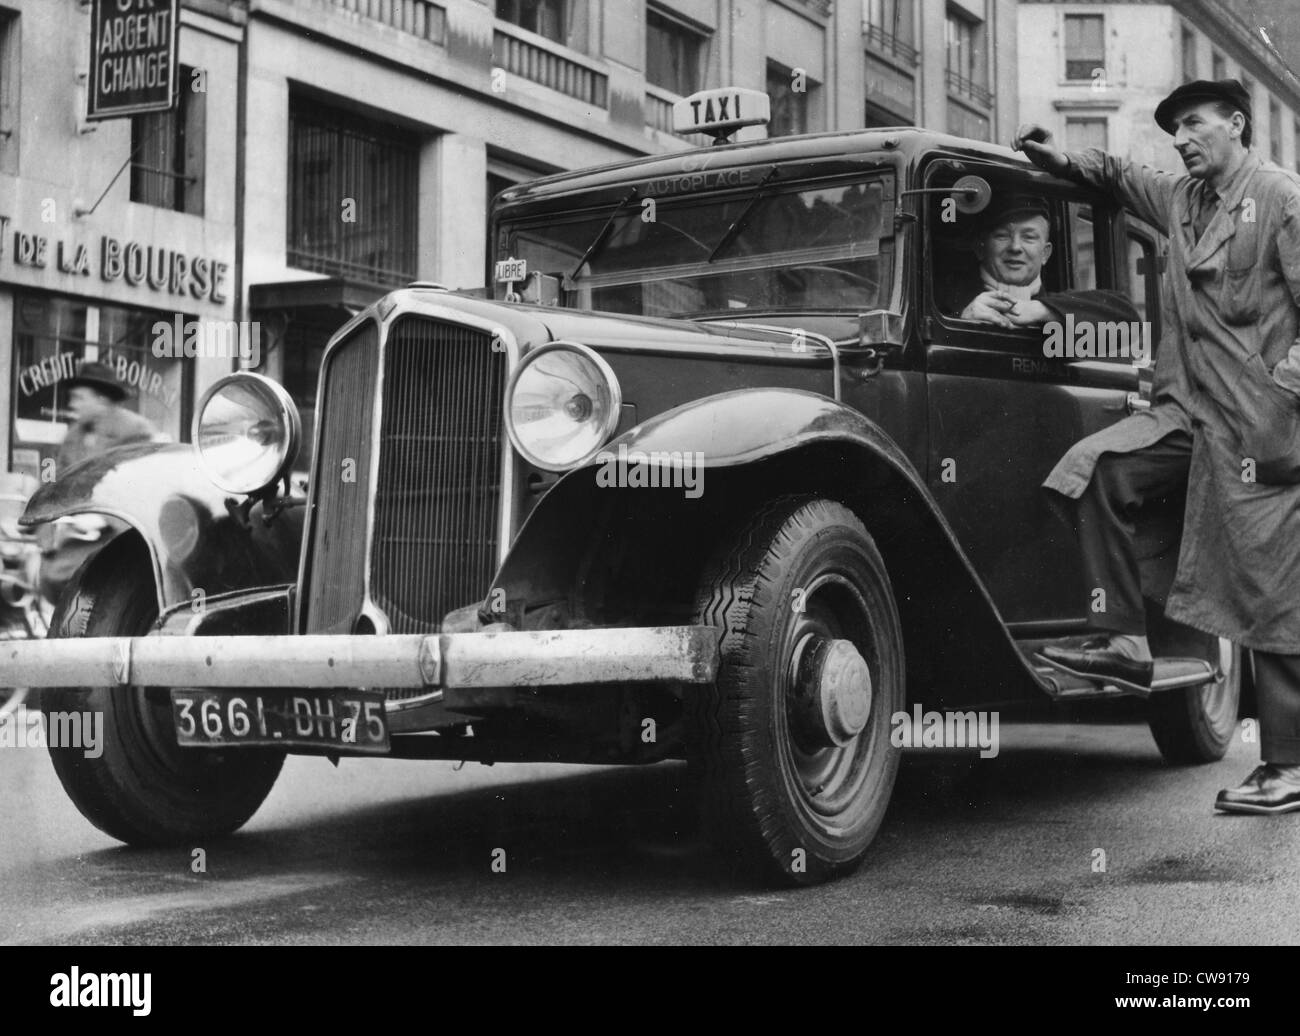 A G7 taxi parked at Bourse square in Paris - Stock Image